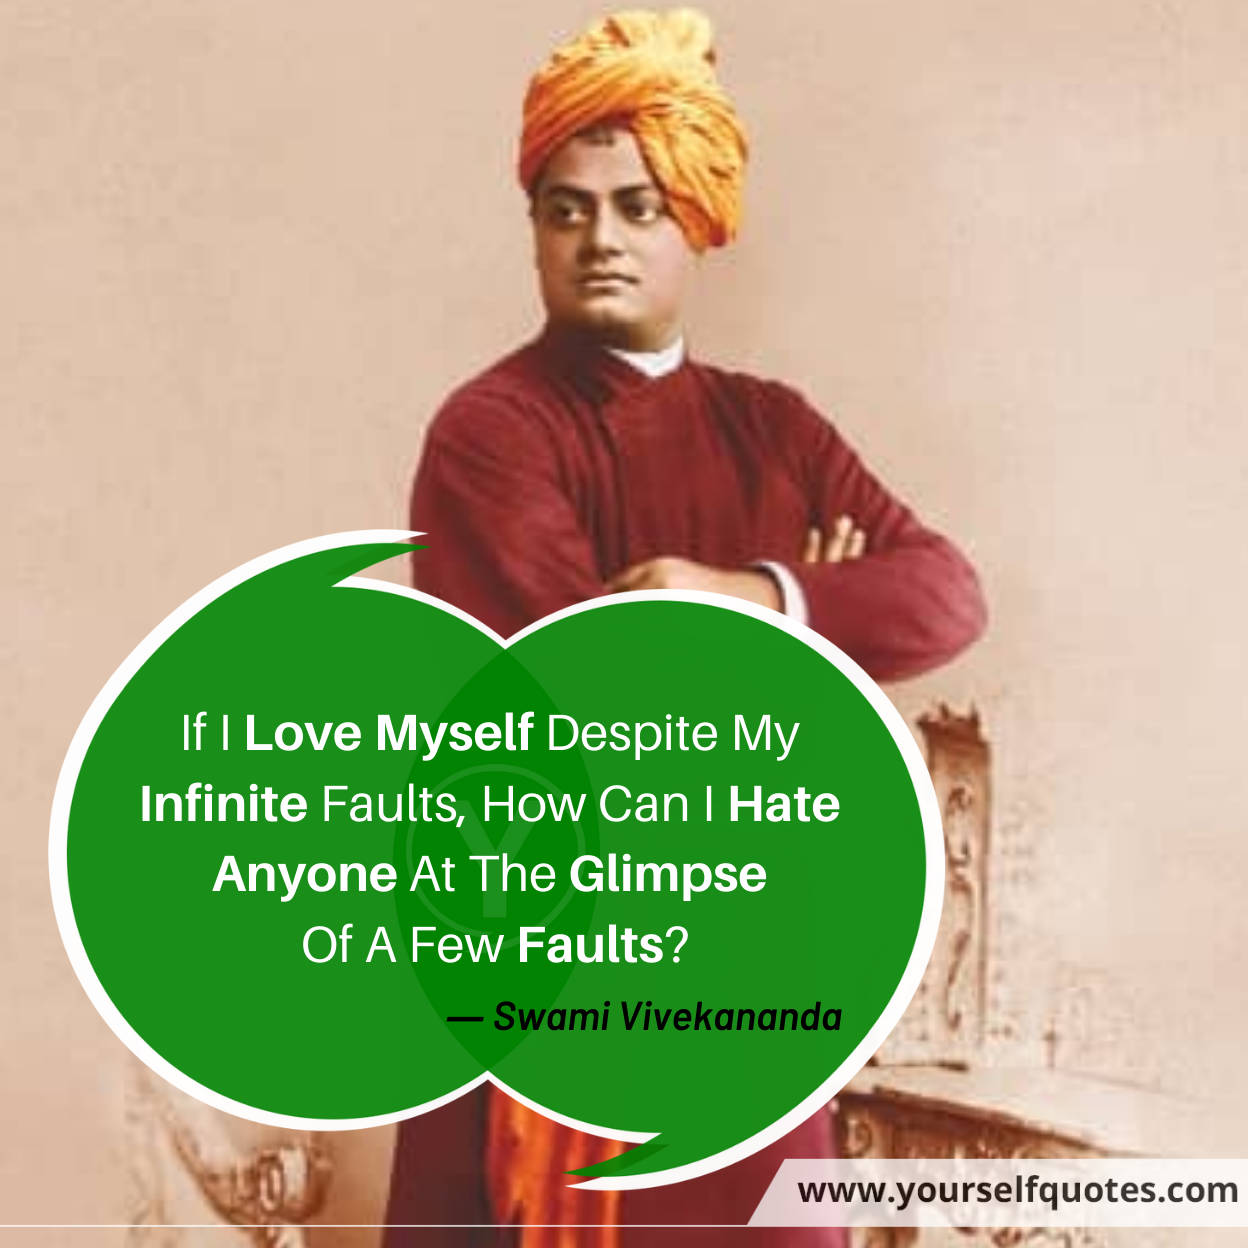 Swami Vivekananda Inspirational Quotes Images